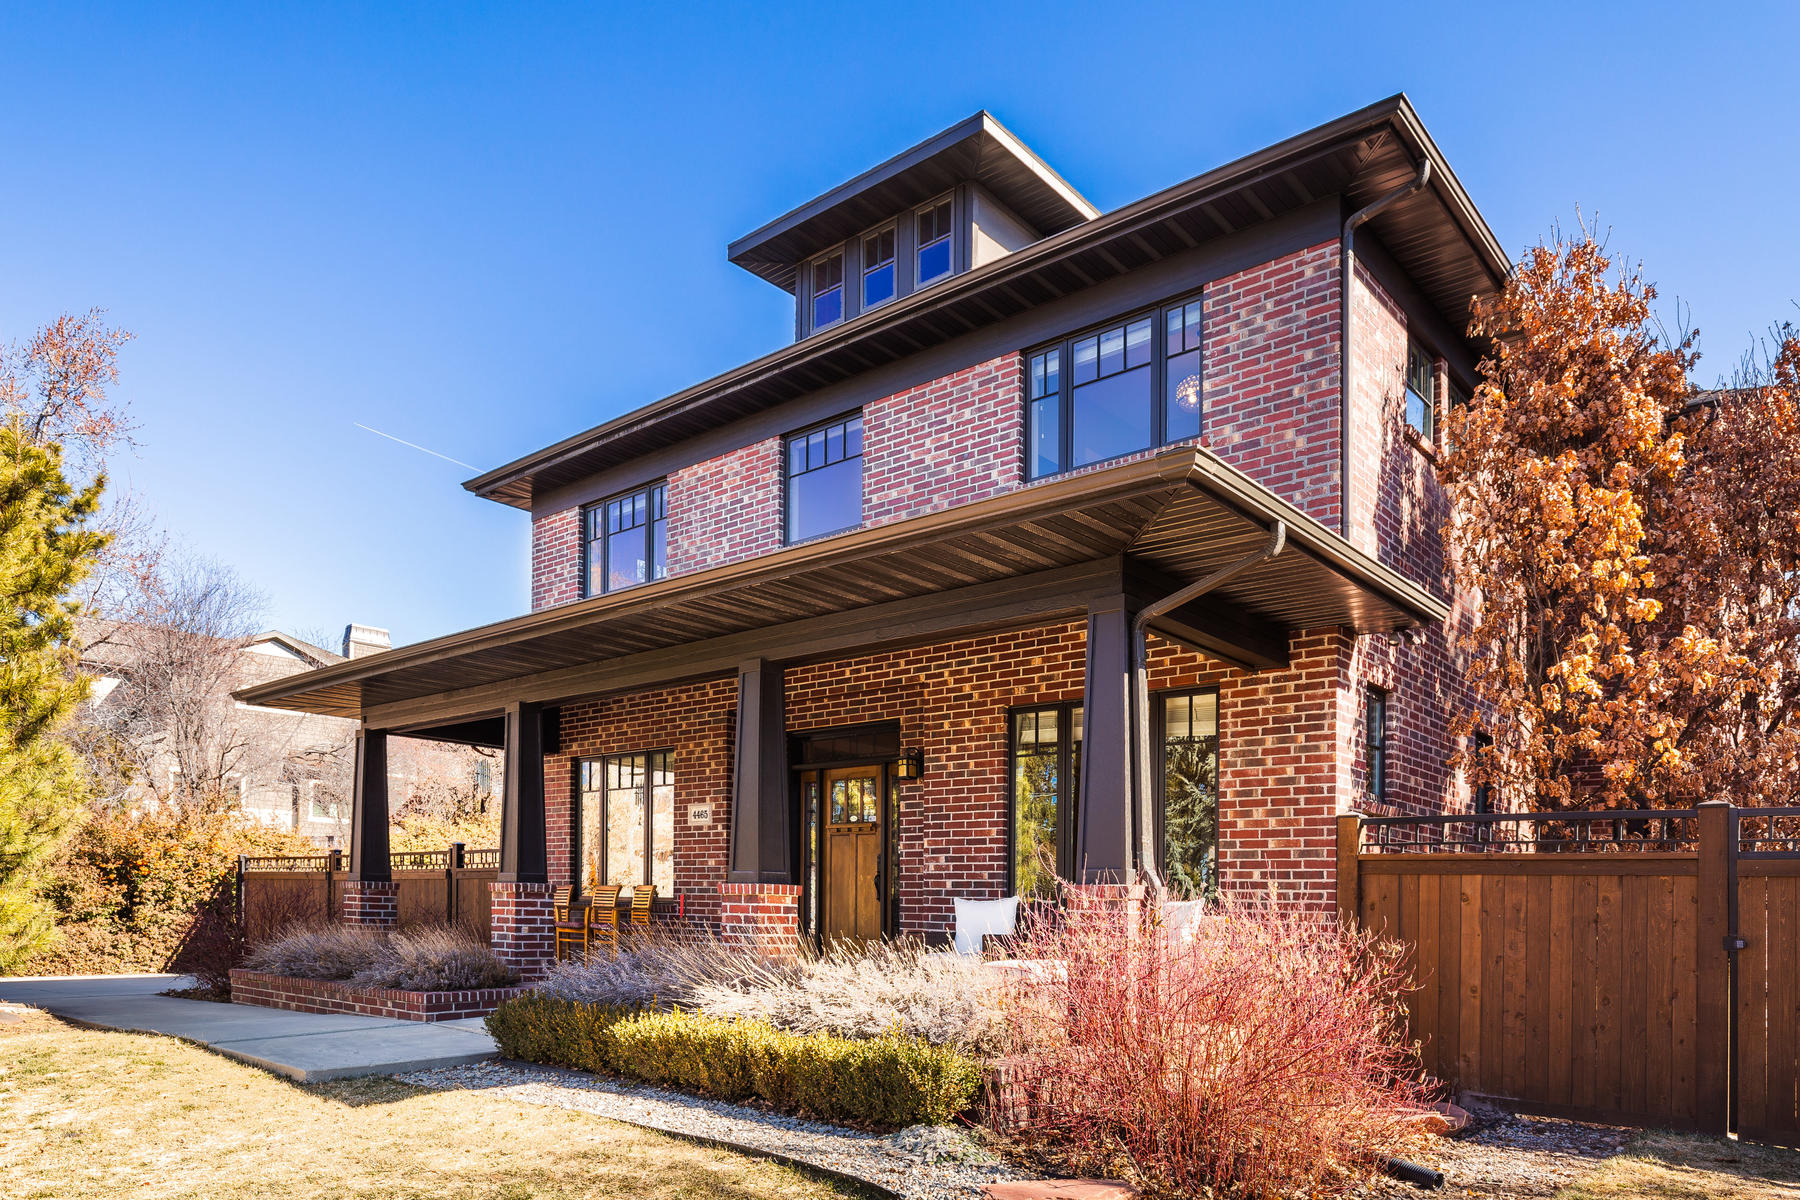 Single Family Homes for Sale at Handsome Brick Estate 4465 South 2700 East Holladay, Utah 84124 United States